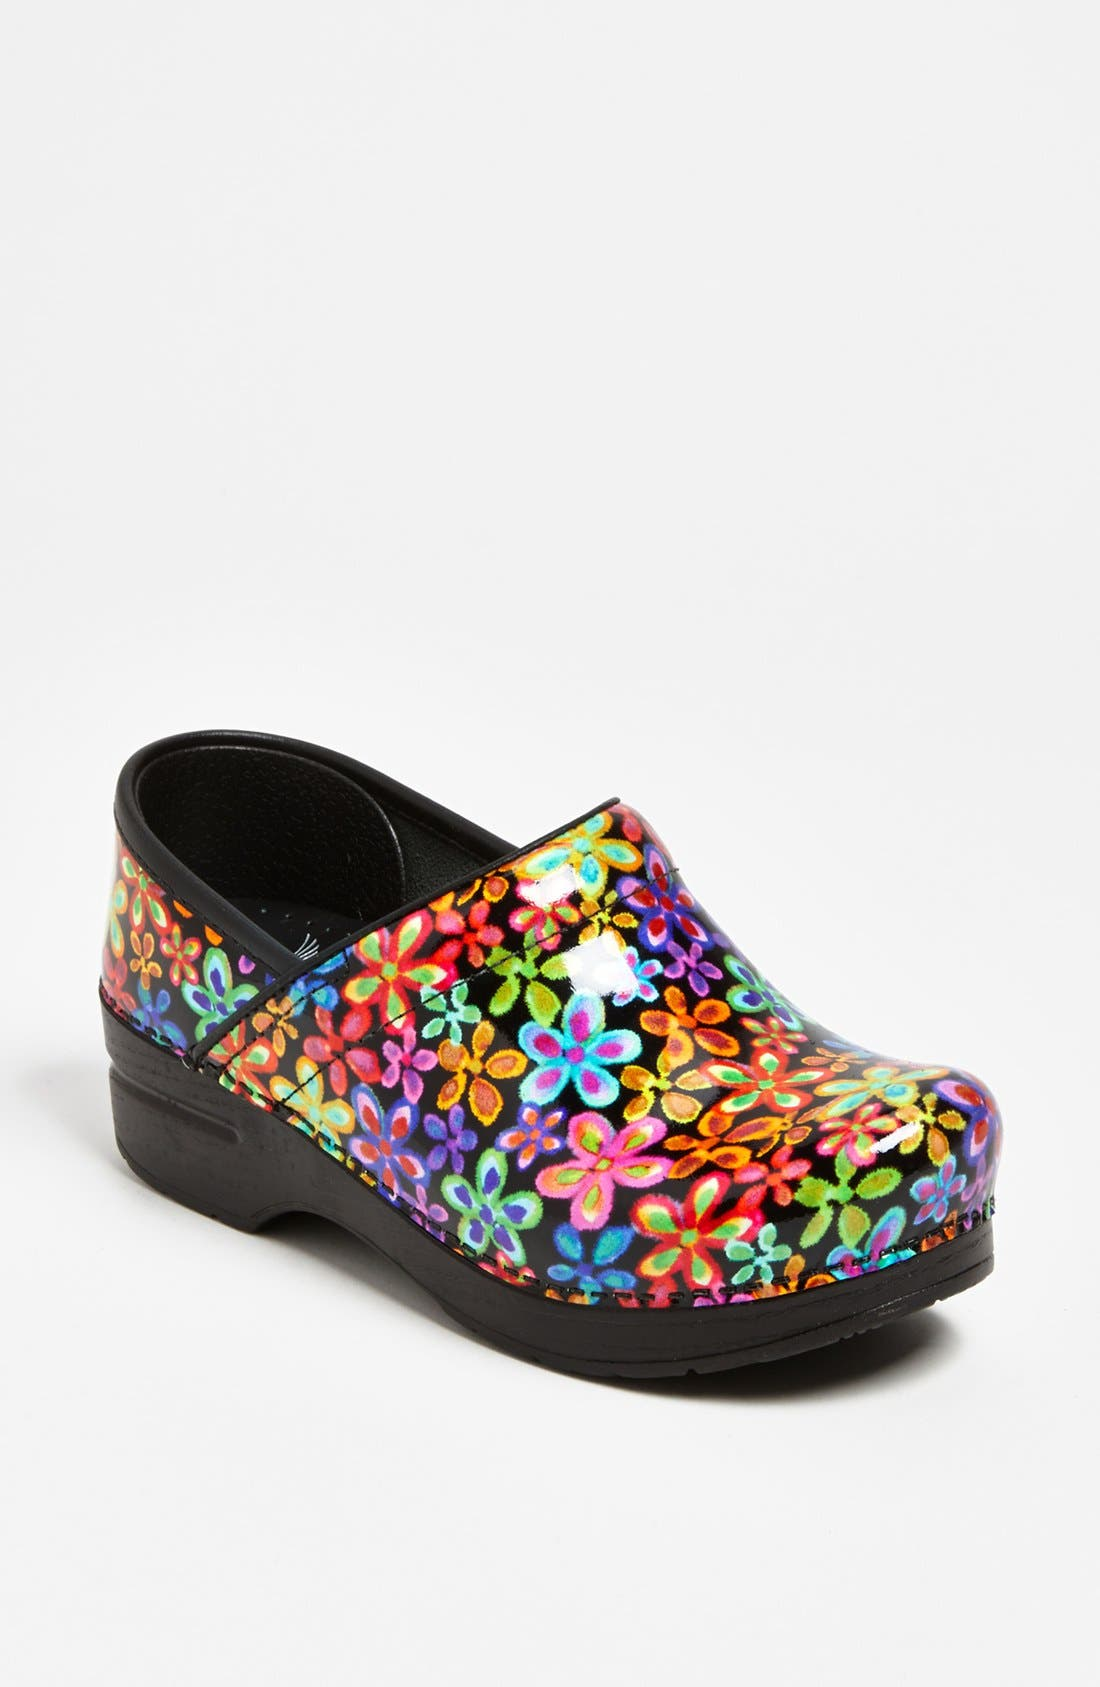 Alternate Image 1 Selected - Dansko 'Professional - Flower Power' Clog